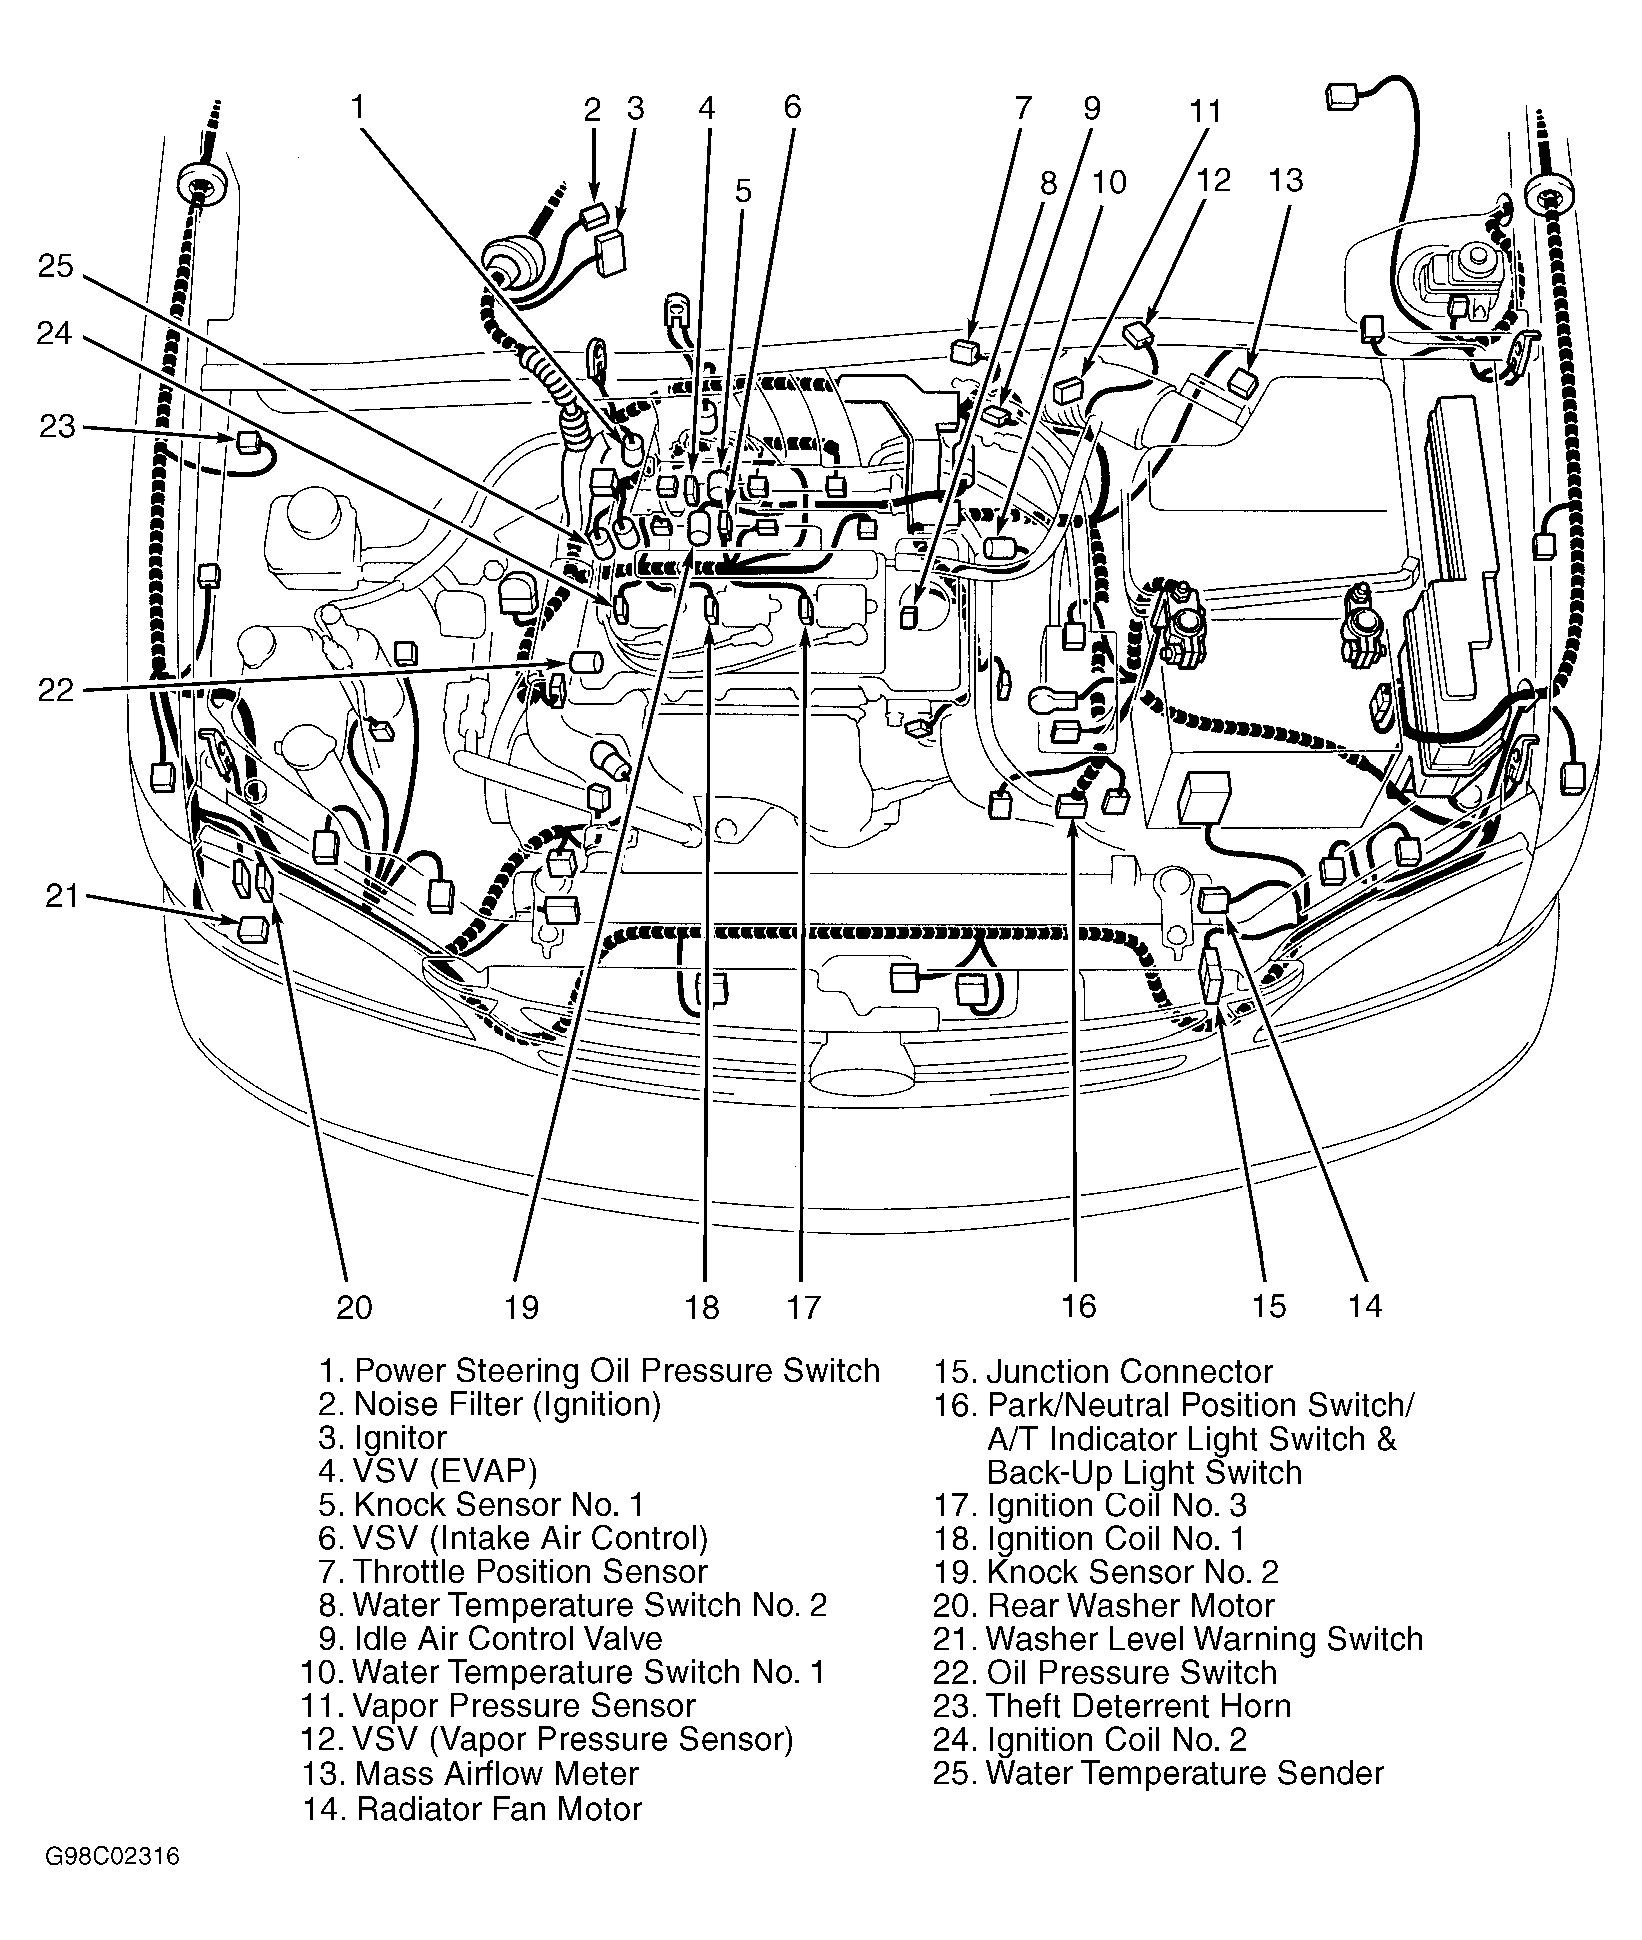 2001 toyota rav4 engine diagram - wiring diagram tell-inspection-c -  tell-inspection-c.consorziofiuggiturismo.it  consorziofiuggiturismo.it